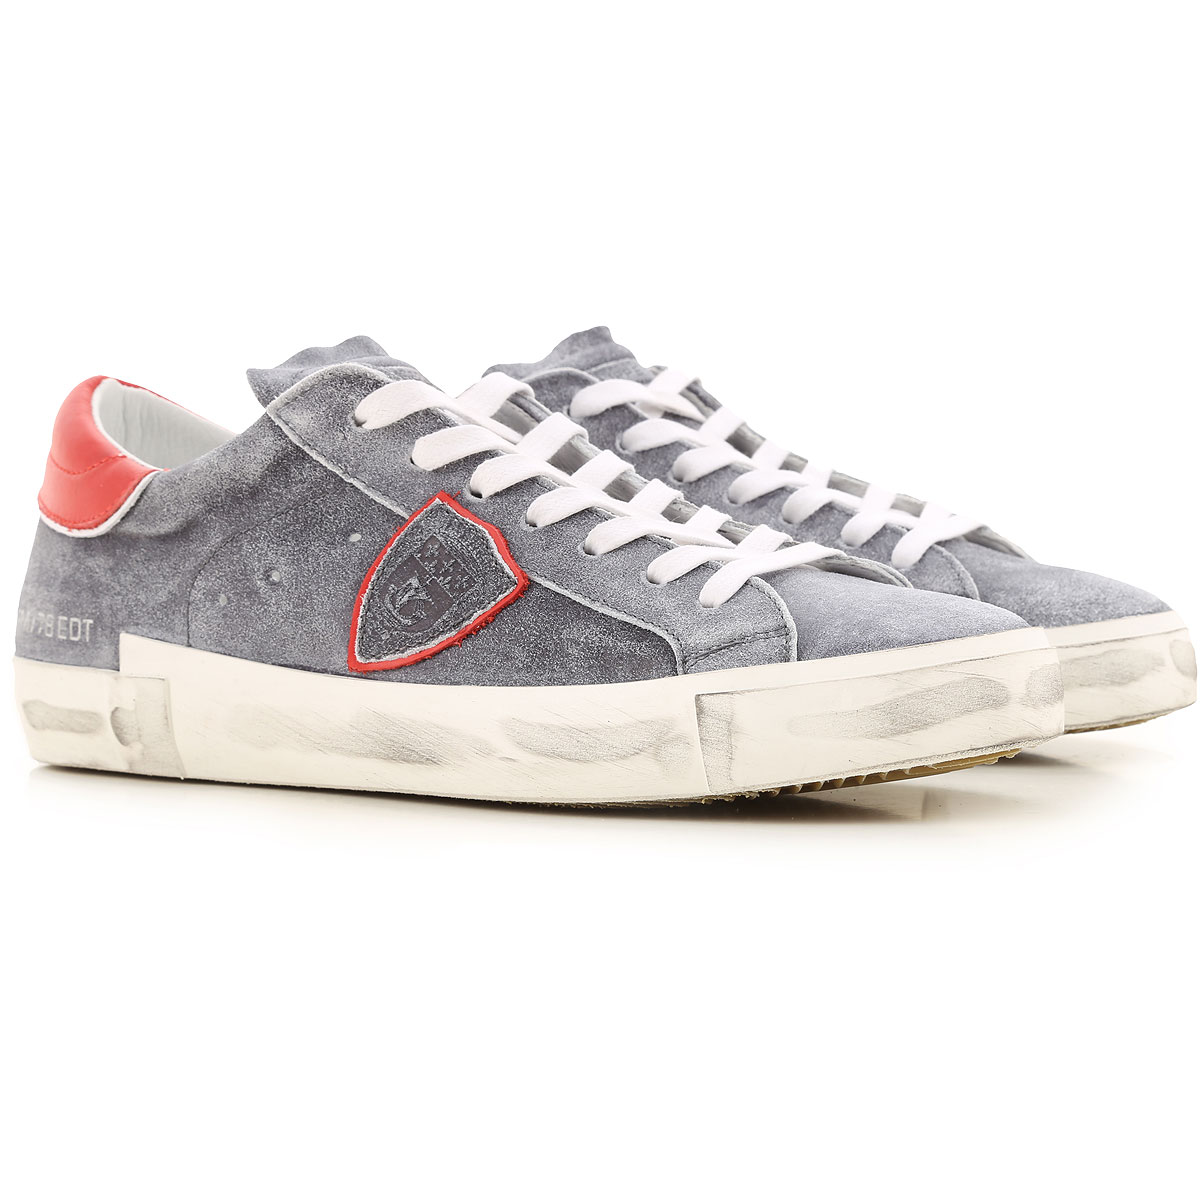 Philippe Model Sneakers for Men On Sale, Faded Grey, Suede leather, 2019, 10 10.5 11.5 8 9